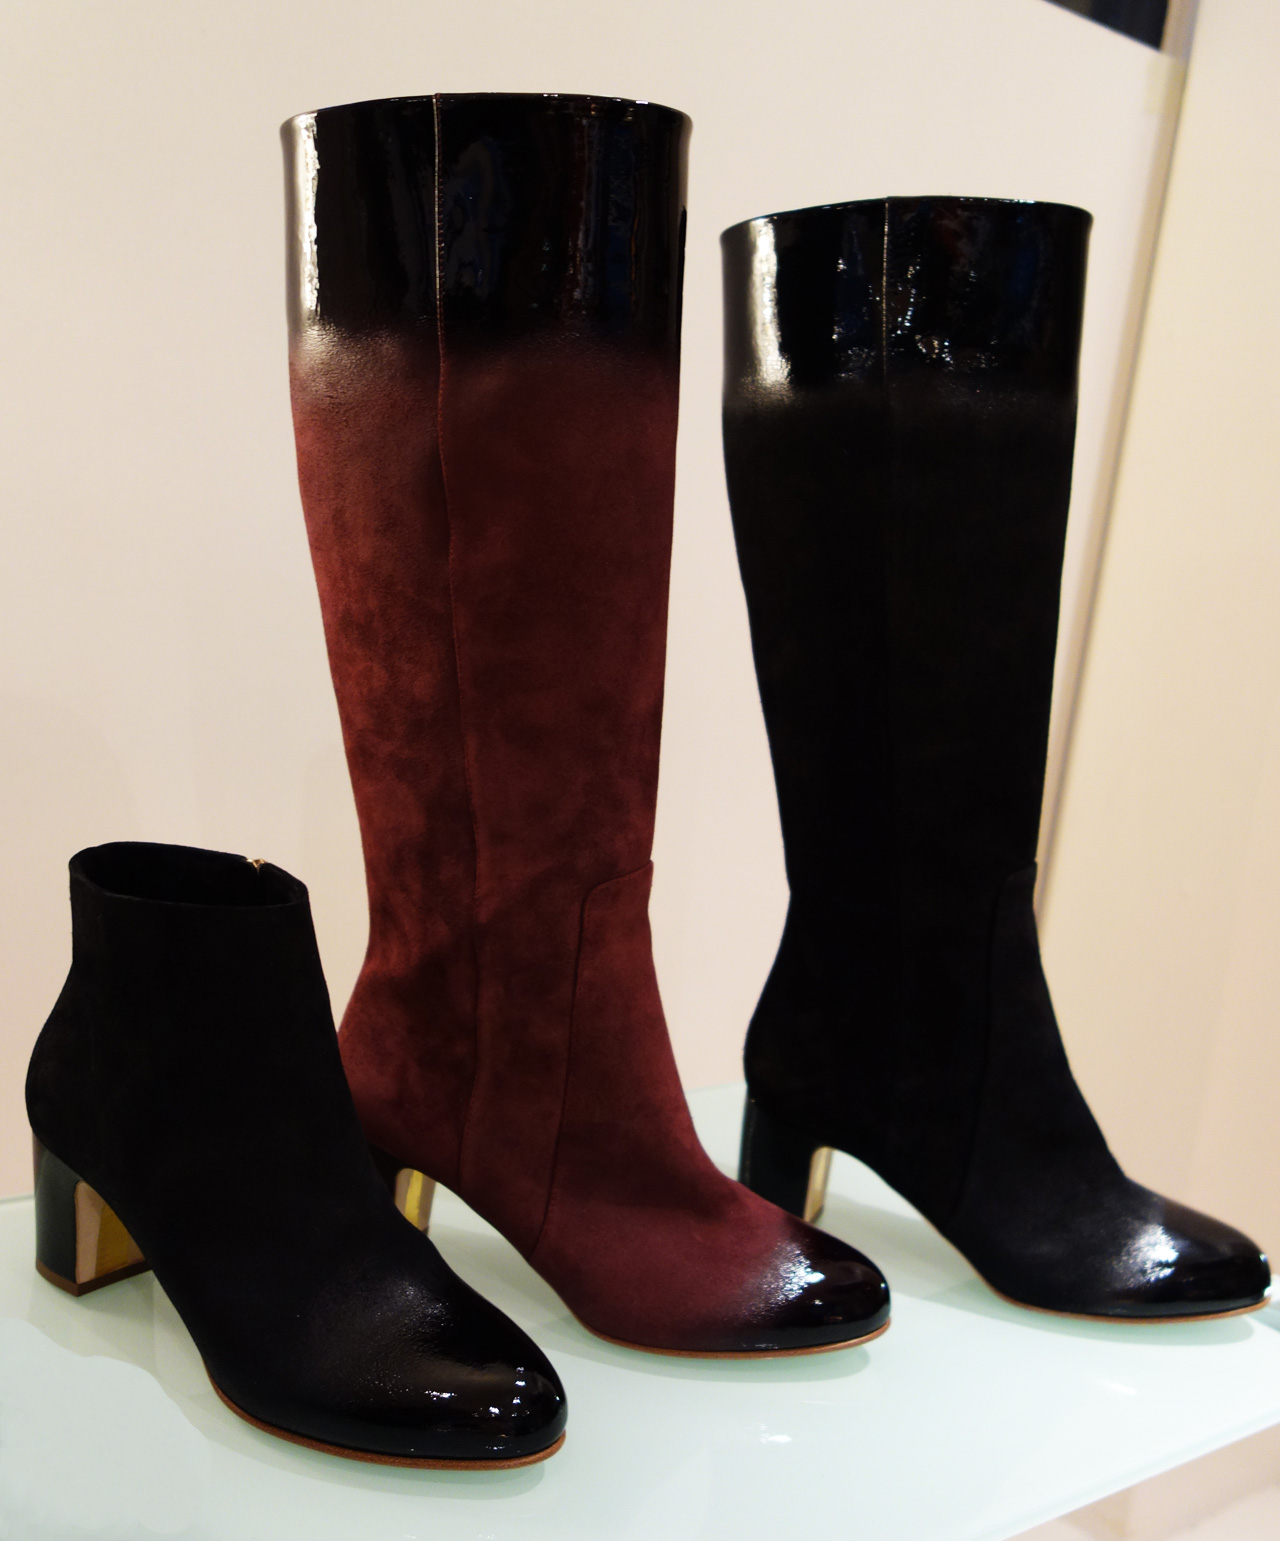 Rupert-Sanderson-Winter-2013-shoes-glacage2